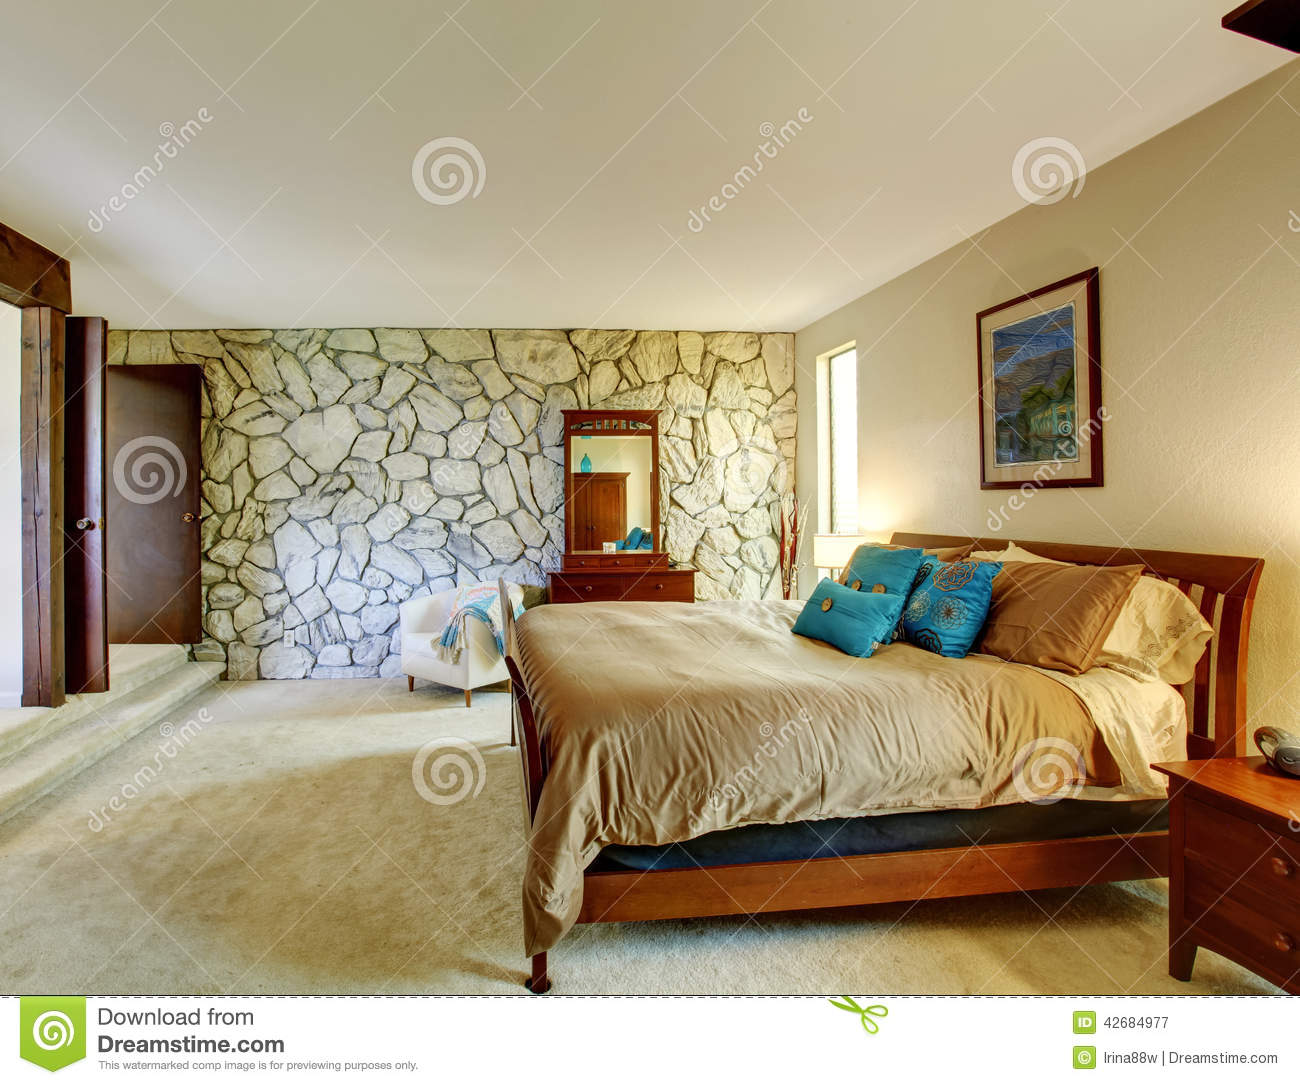 Beautiful Bedroom Interior With Rock Wall